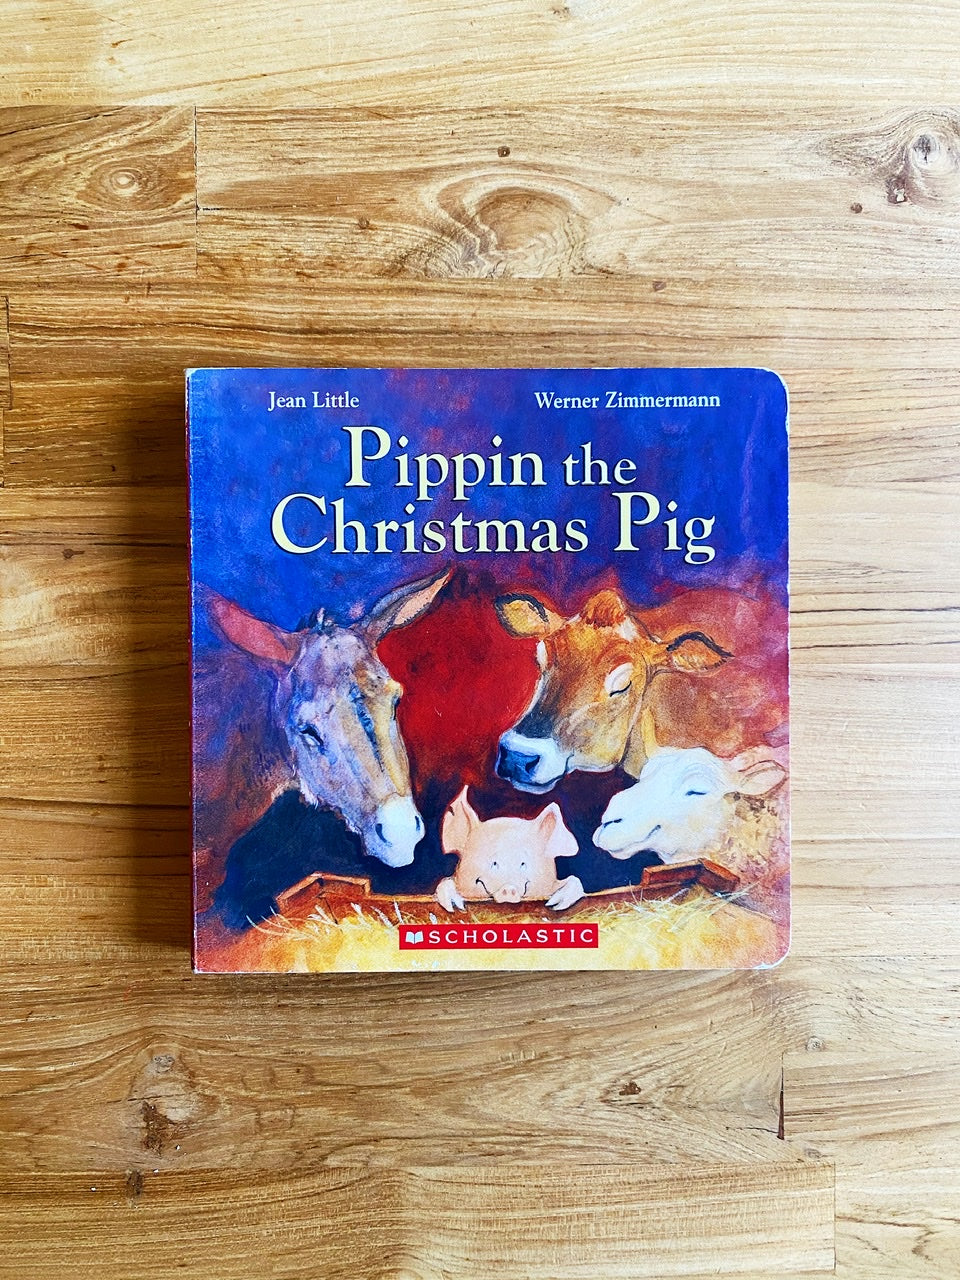 Pippin The Christmas Pig by Jean Little & Werner Zimmermann